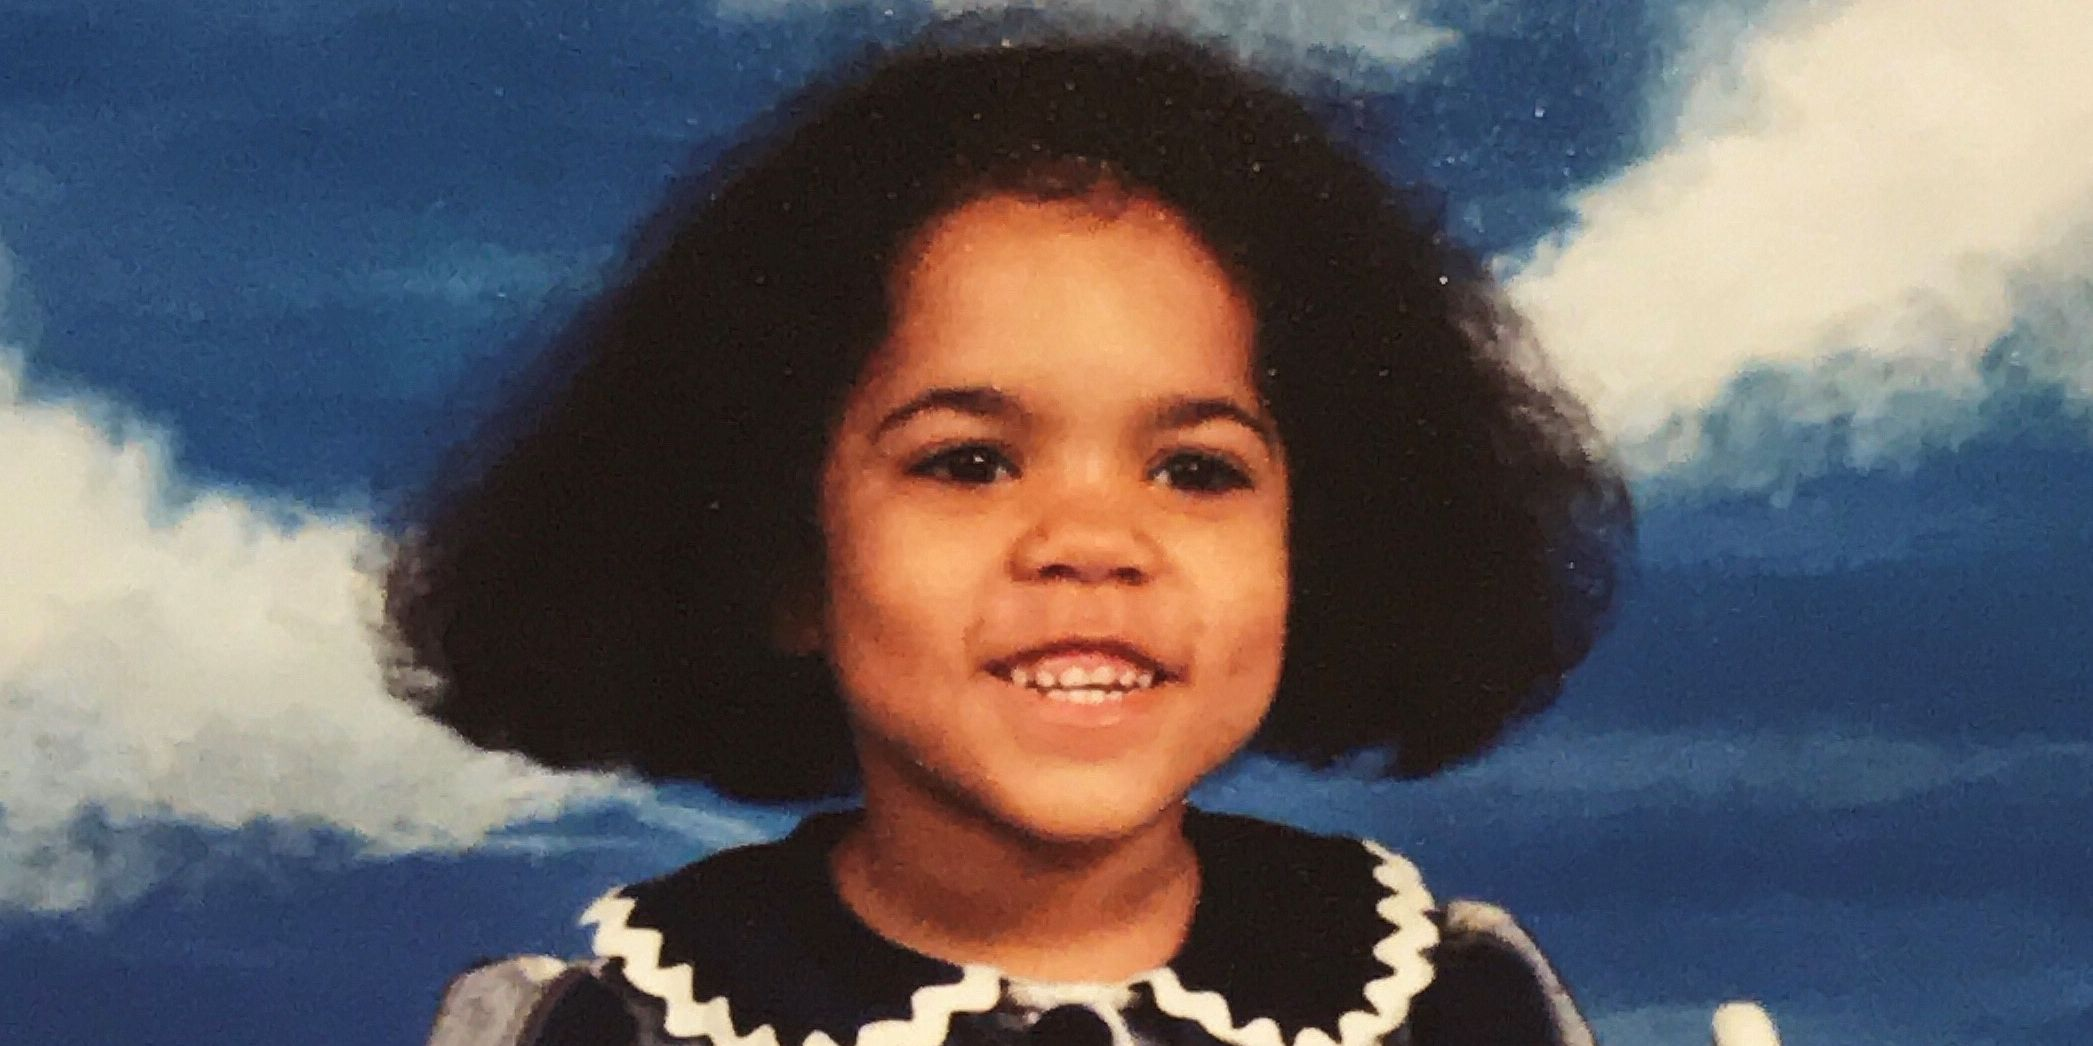 Finding Brittany Williams: 7-year-old with AIDS still missing after 19 years